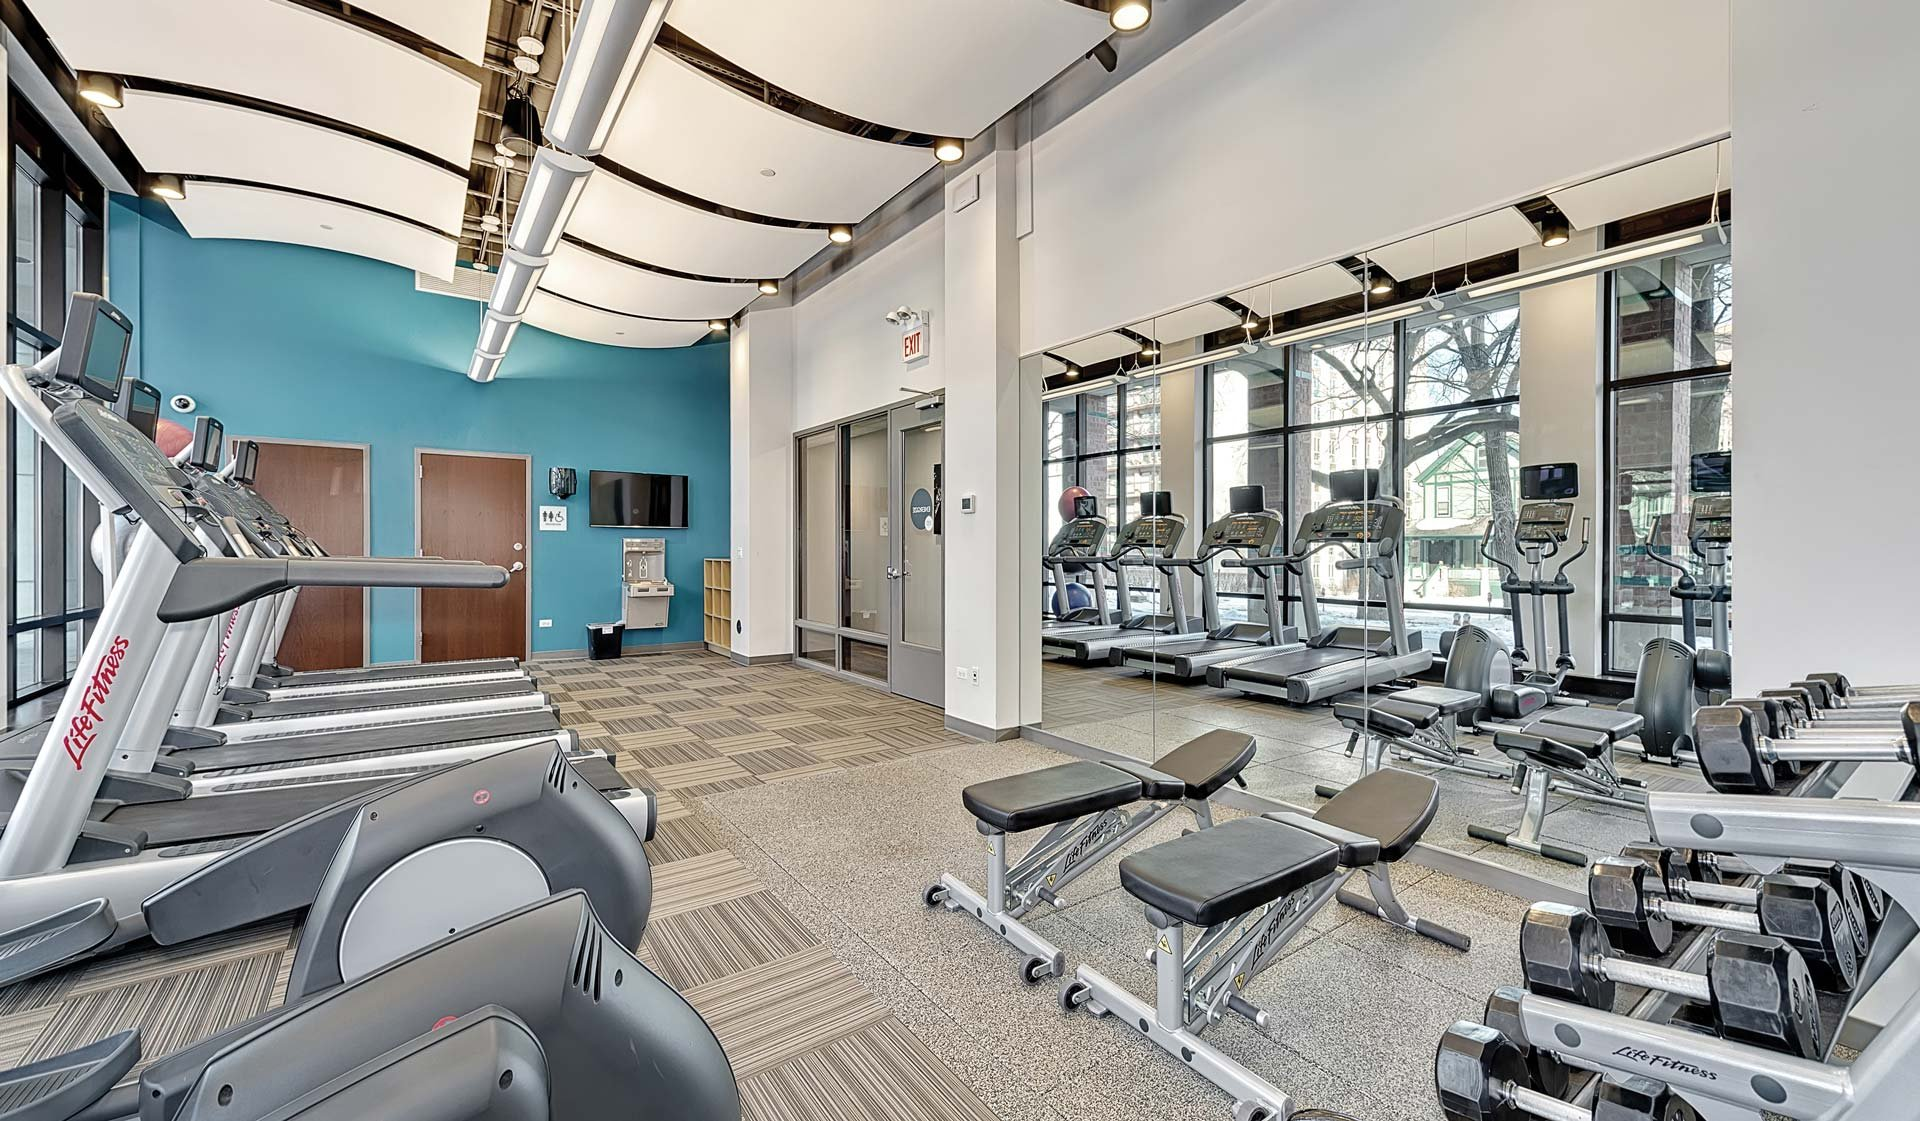 Chicago, IL Apartments for rent at Evanston Place Apartments - Fitness Center